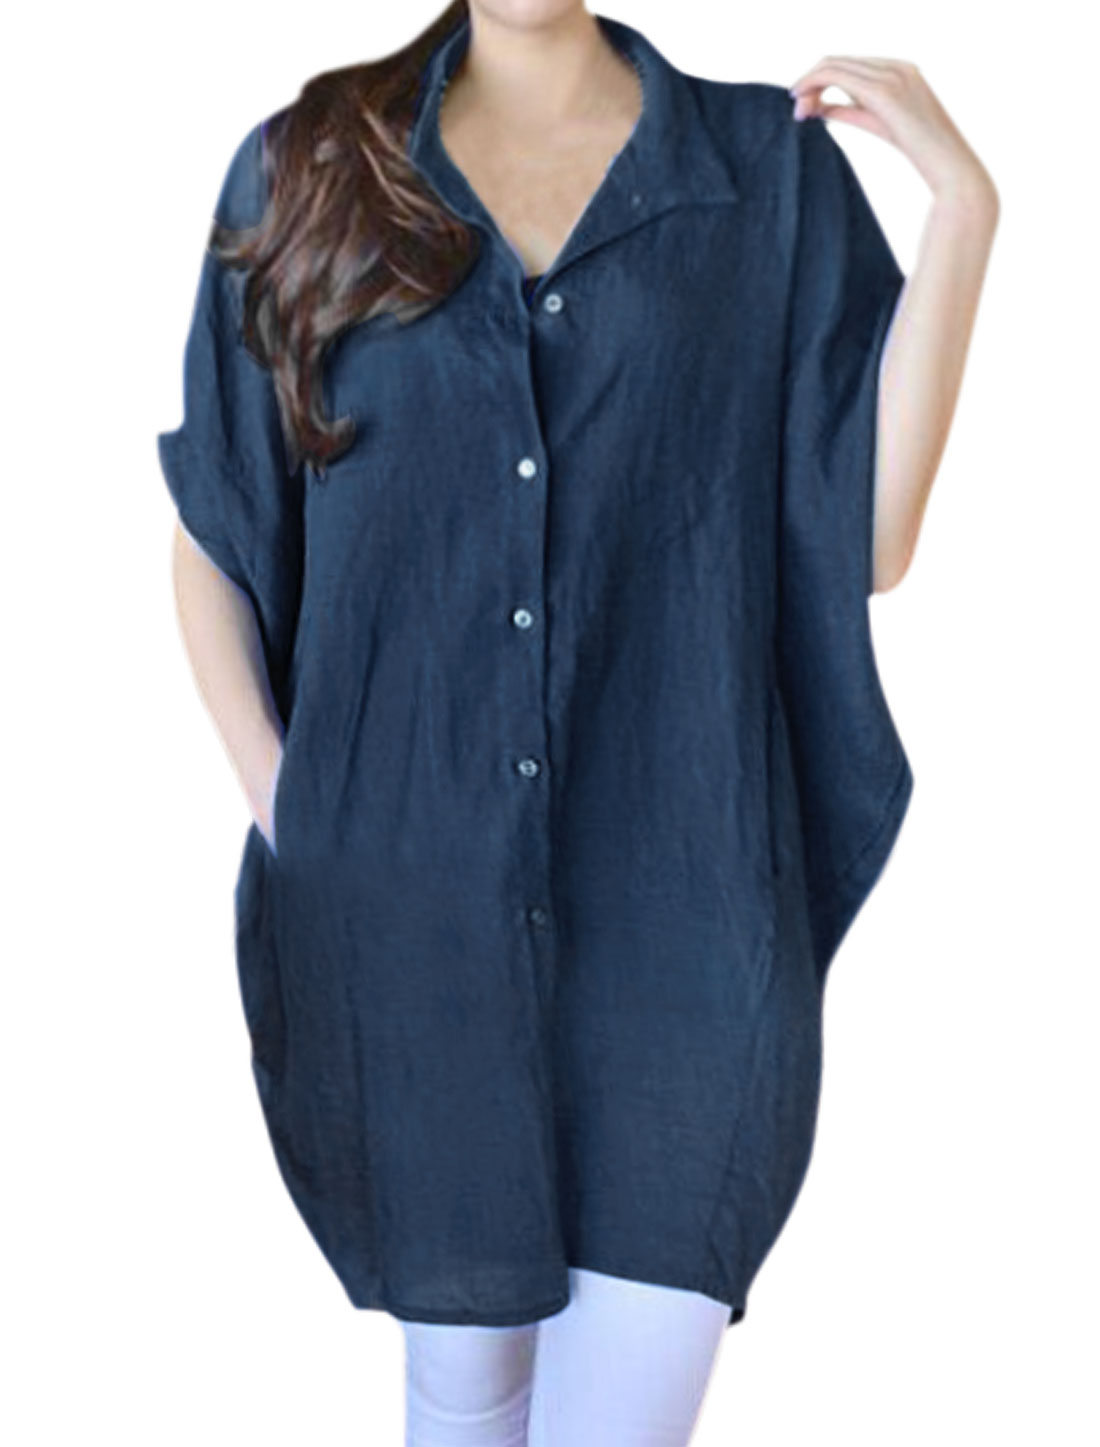 Women Batwing Sleeves Button Up Oversized Shirt Dress Navy Blue S